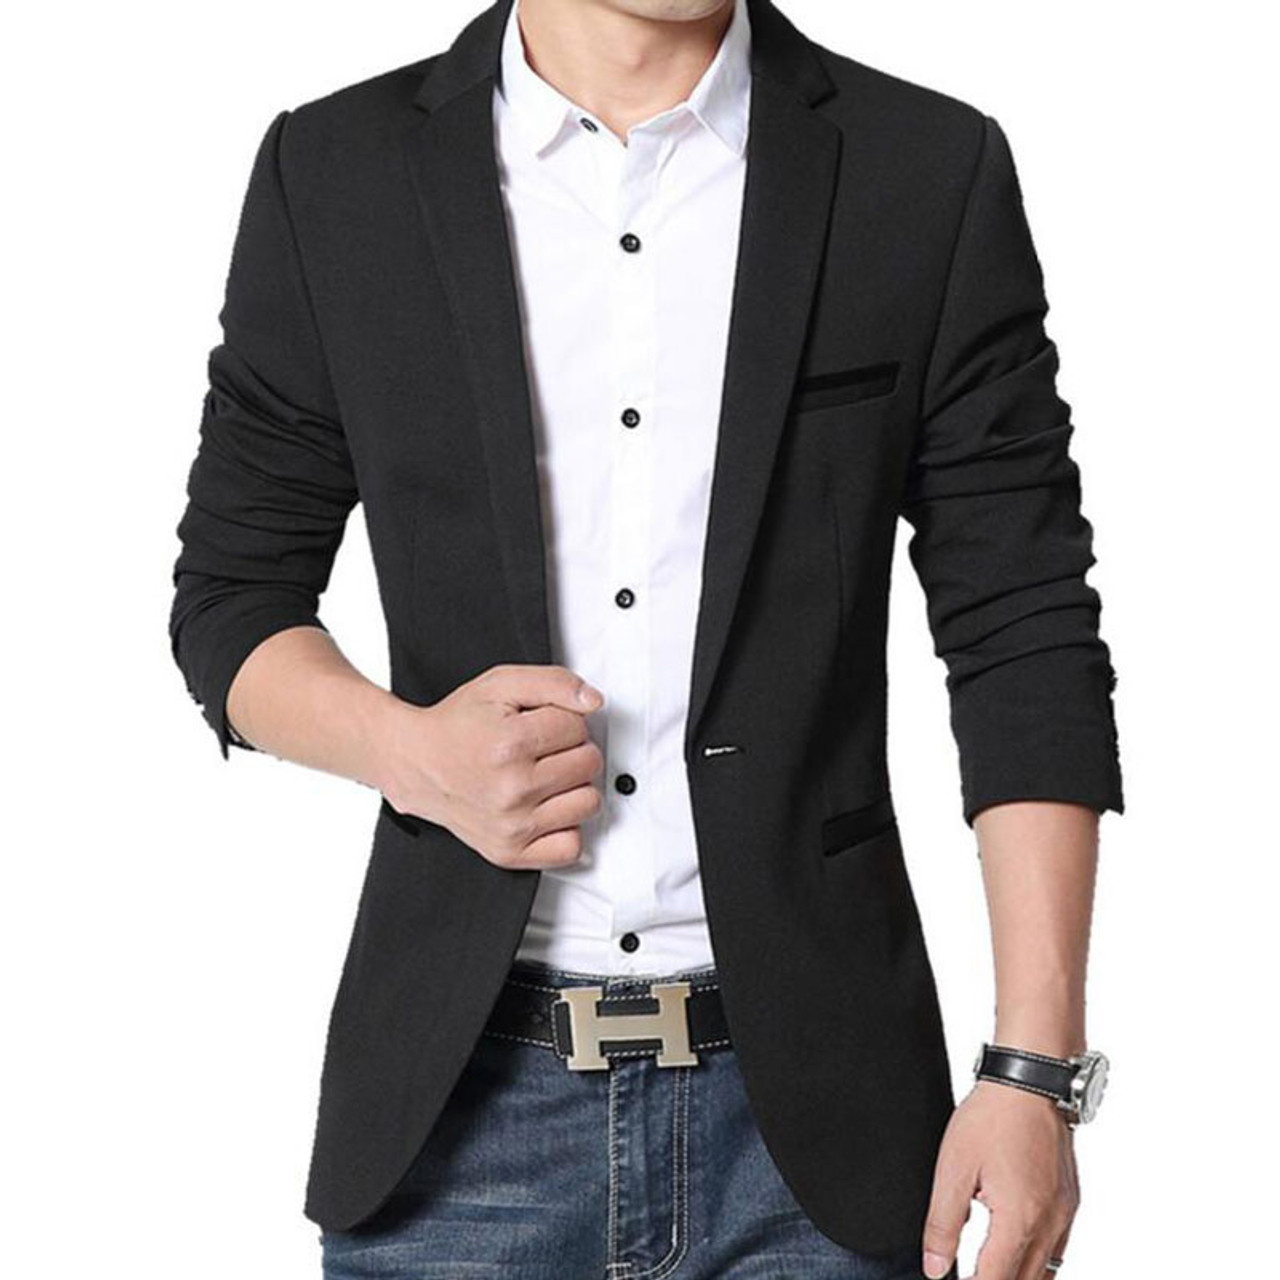 f4e836355bd3 ... RUMEIAI Mens Korean slim fit fashion cotton blazer Suit Jacket black  blue plus size M- ...